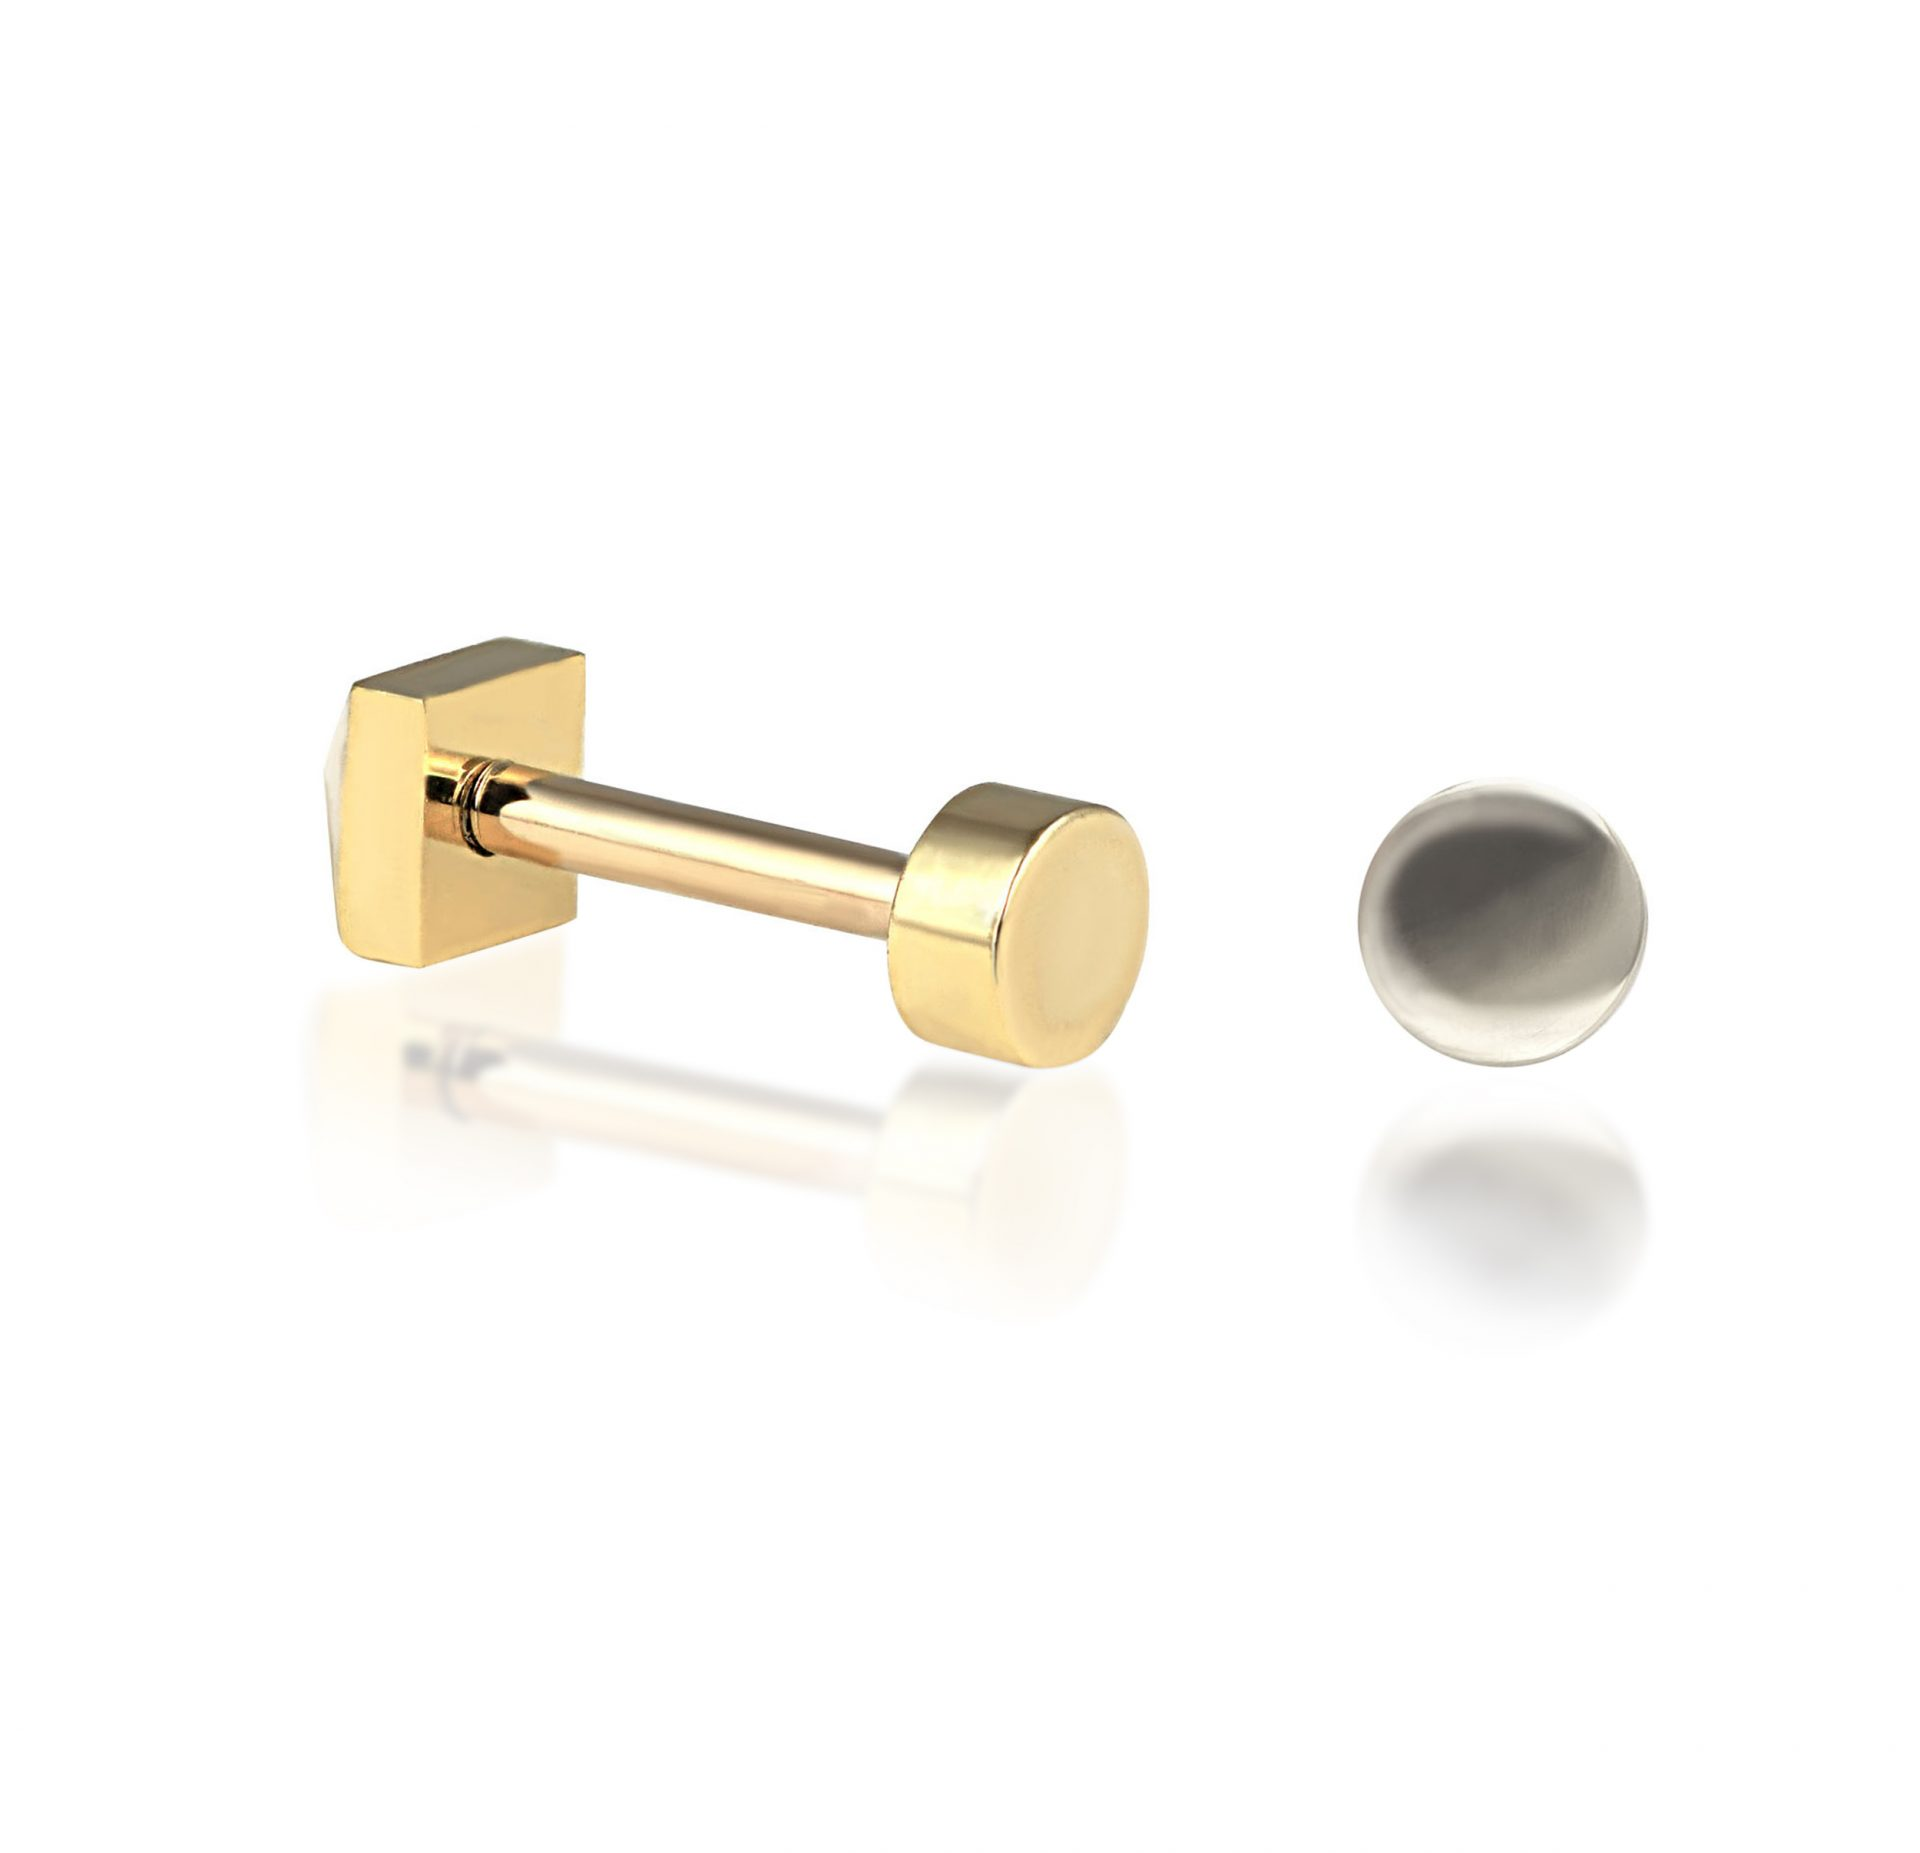 solid-gold-disk–minimalistic-piercing-studs-screw-backs-18k-lena-cohen-london-luxury-piercings-reasonable-prices